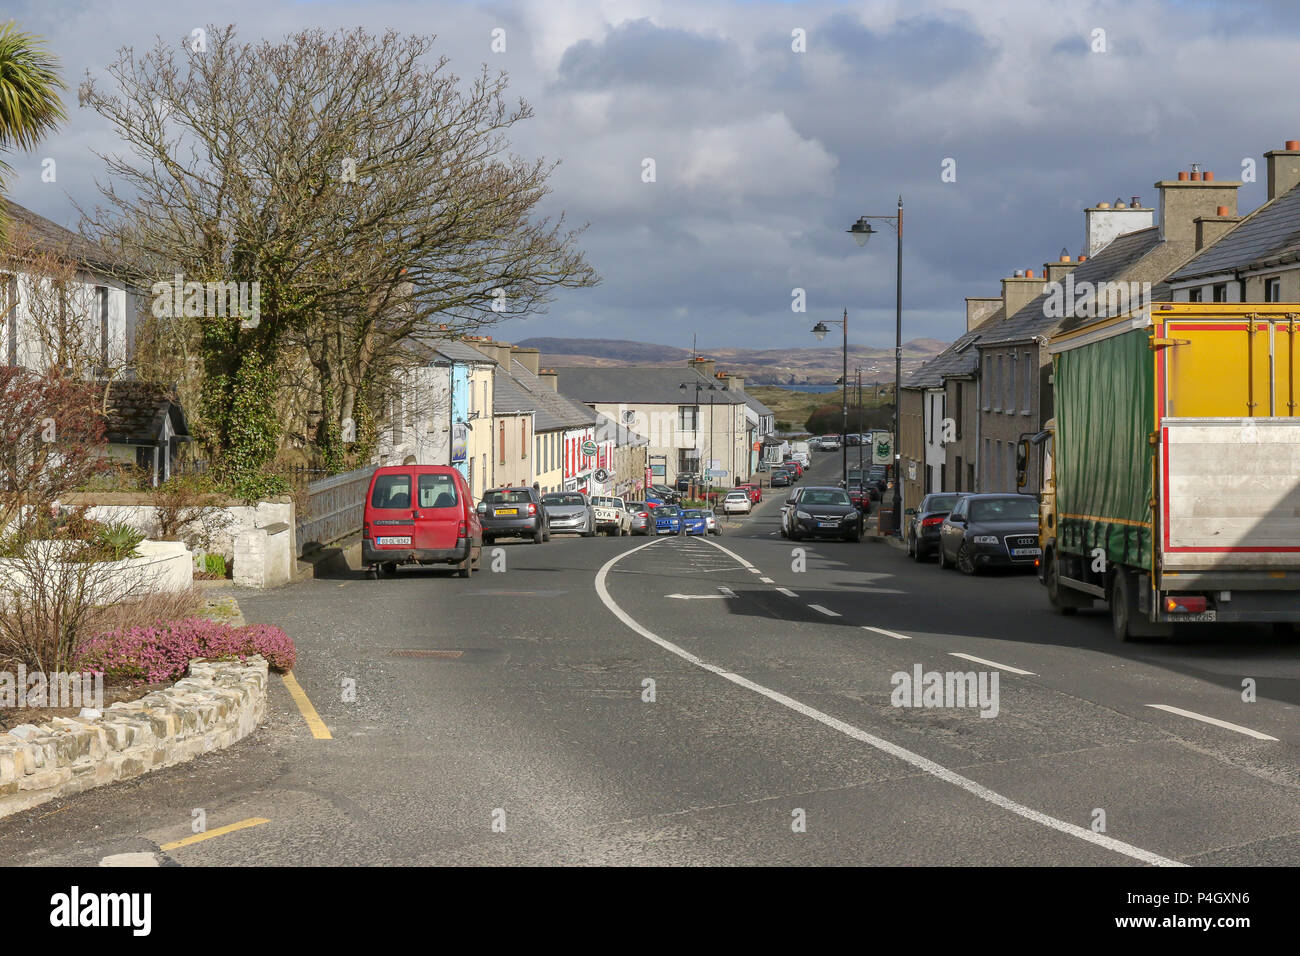 The long main street in Dunfanaghy - a popular village in County Donegal with Sheephaven Bay at the end of the .street. - Stock Image